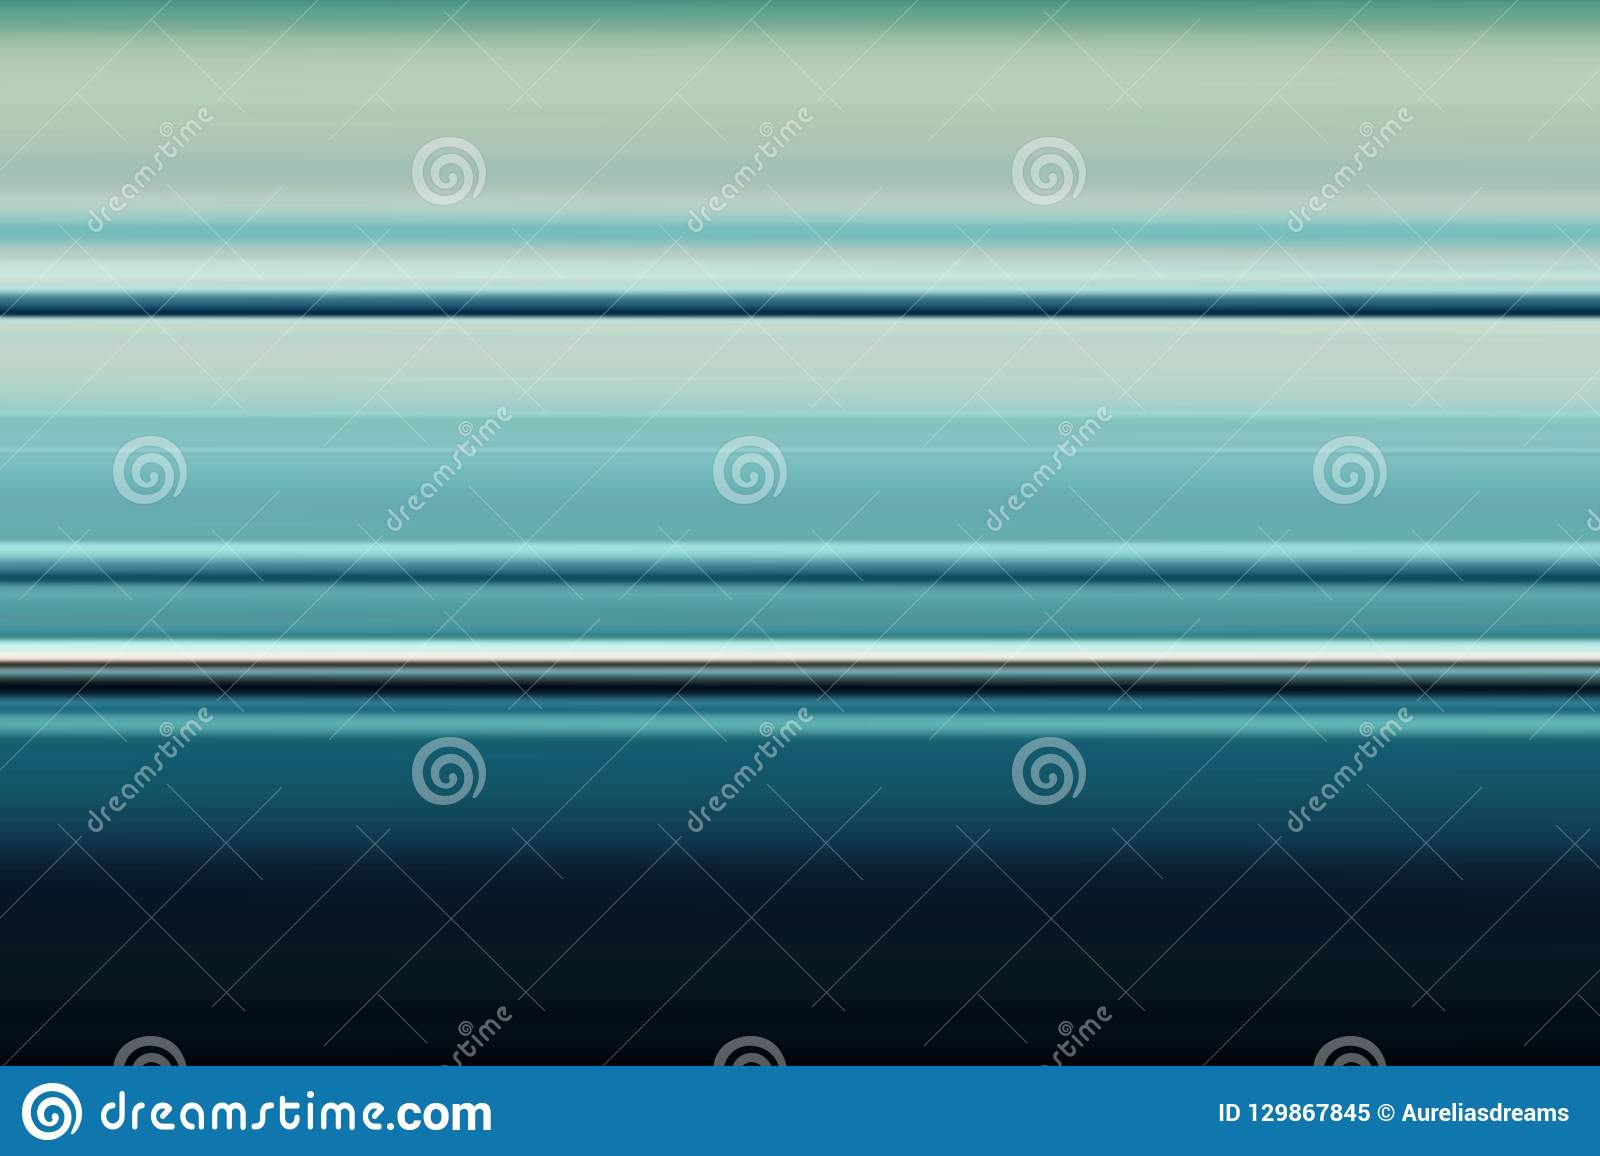 Сolorful abstract bright horizontal lines background, texture in blue tones.